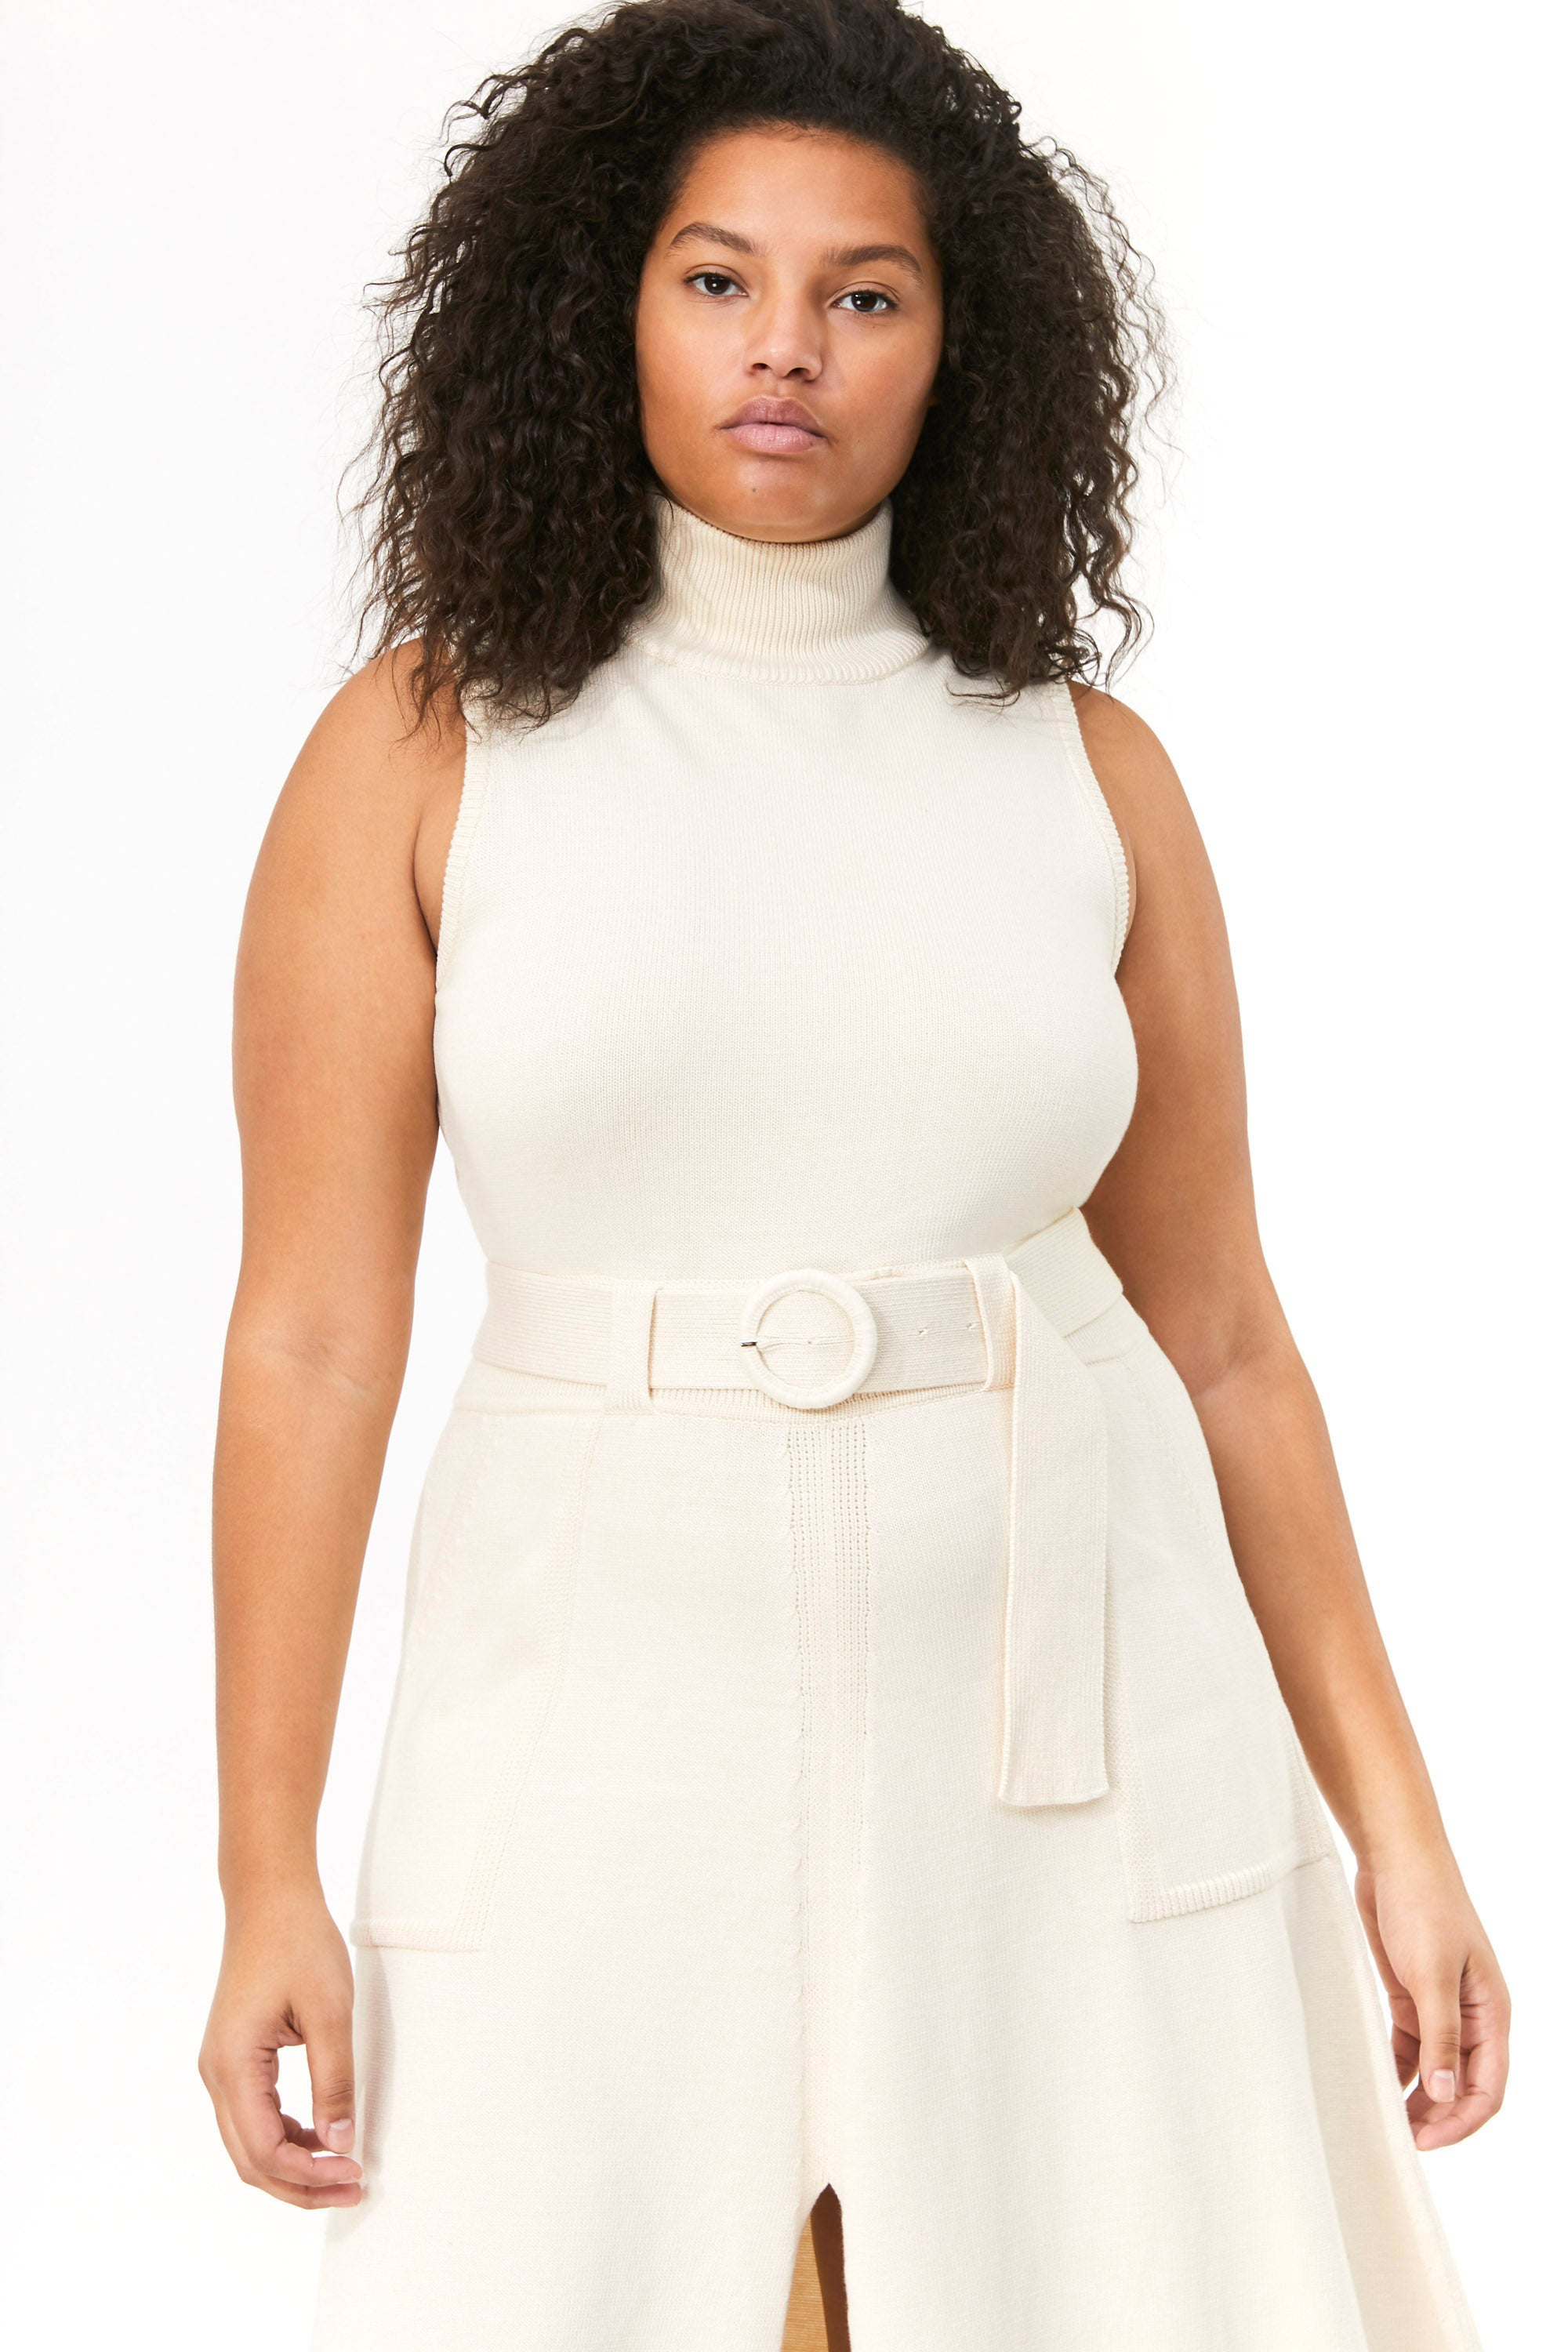 Mara Hoffman Extended Ivory Elle Dress in organic cotton (neck detail)